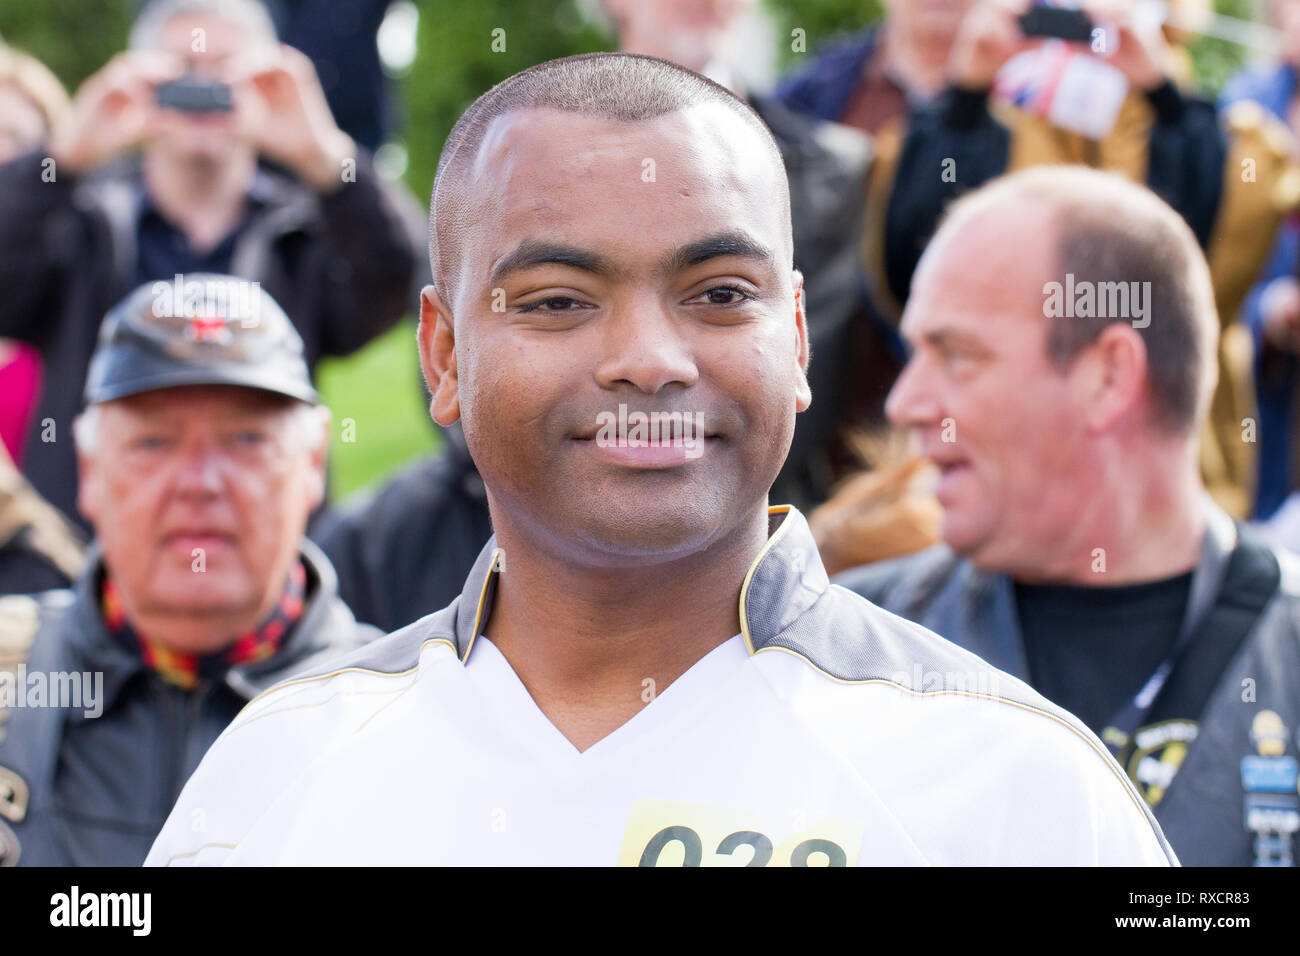 Lance Sergeant Johnson Gideon Beharry (VC)Victoria Cross  British Army Soldier at the Armed Forces Memorial, National Memorial Arboretum,Staffordshire - Stock Image